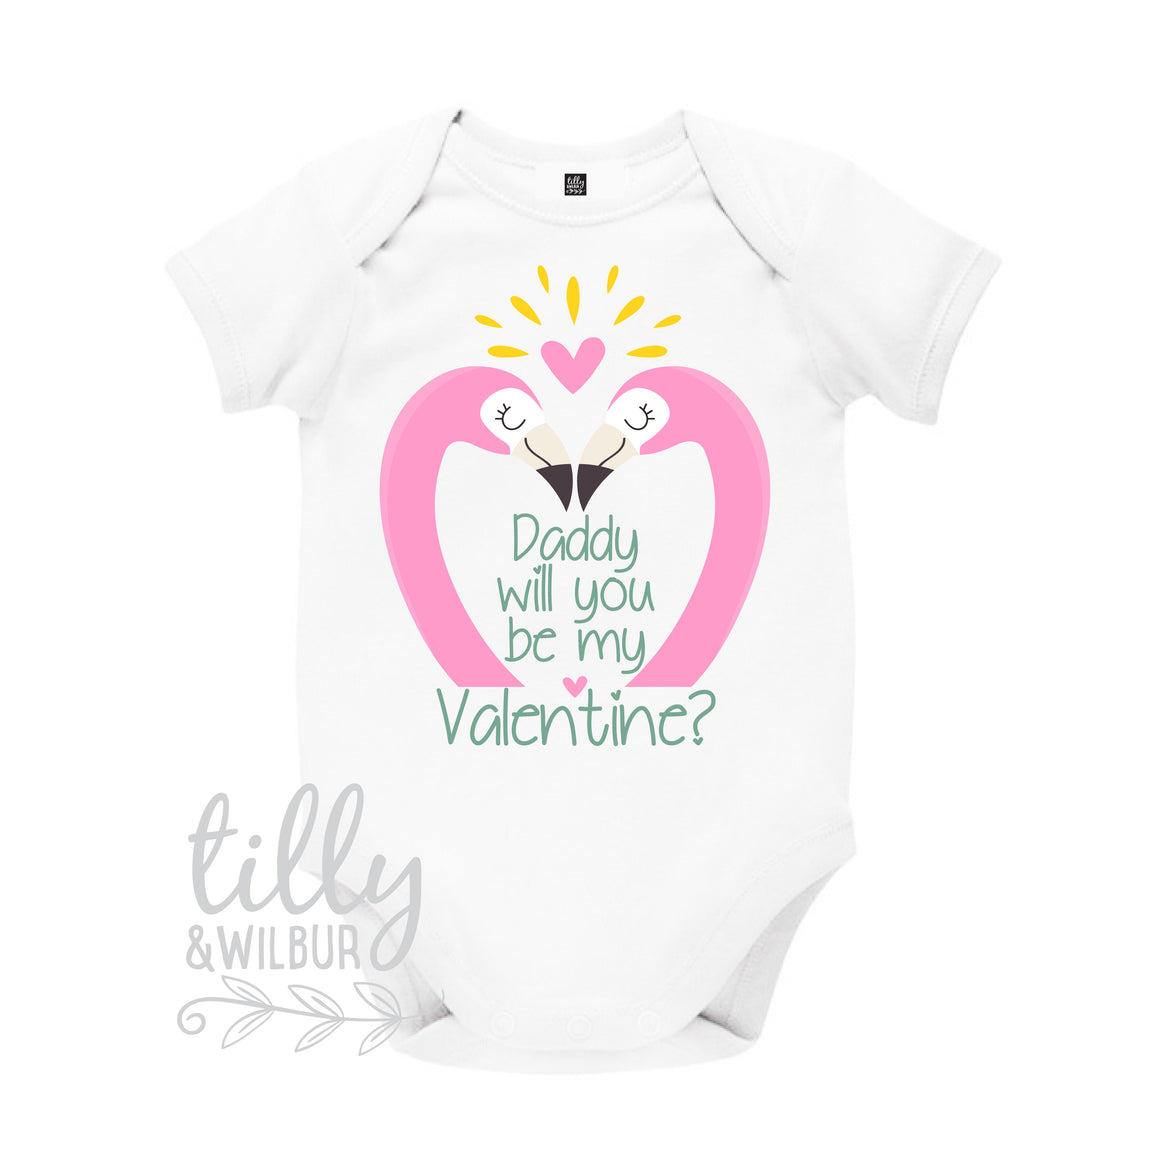 Daddy, Will You Be My Valentine?